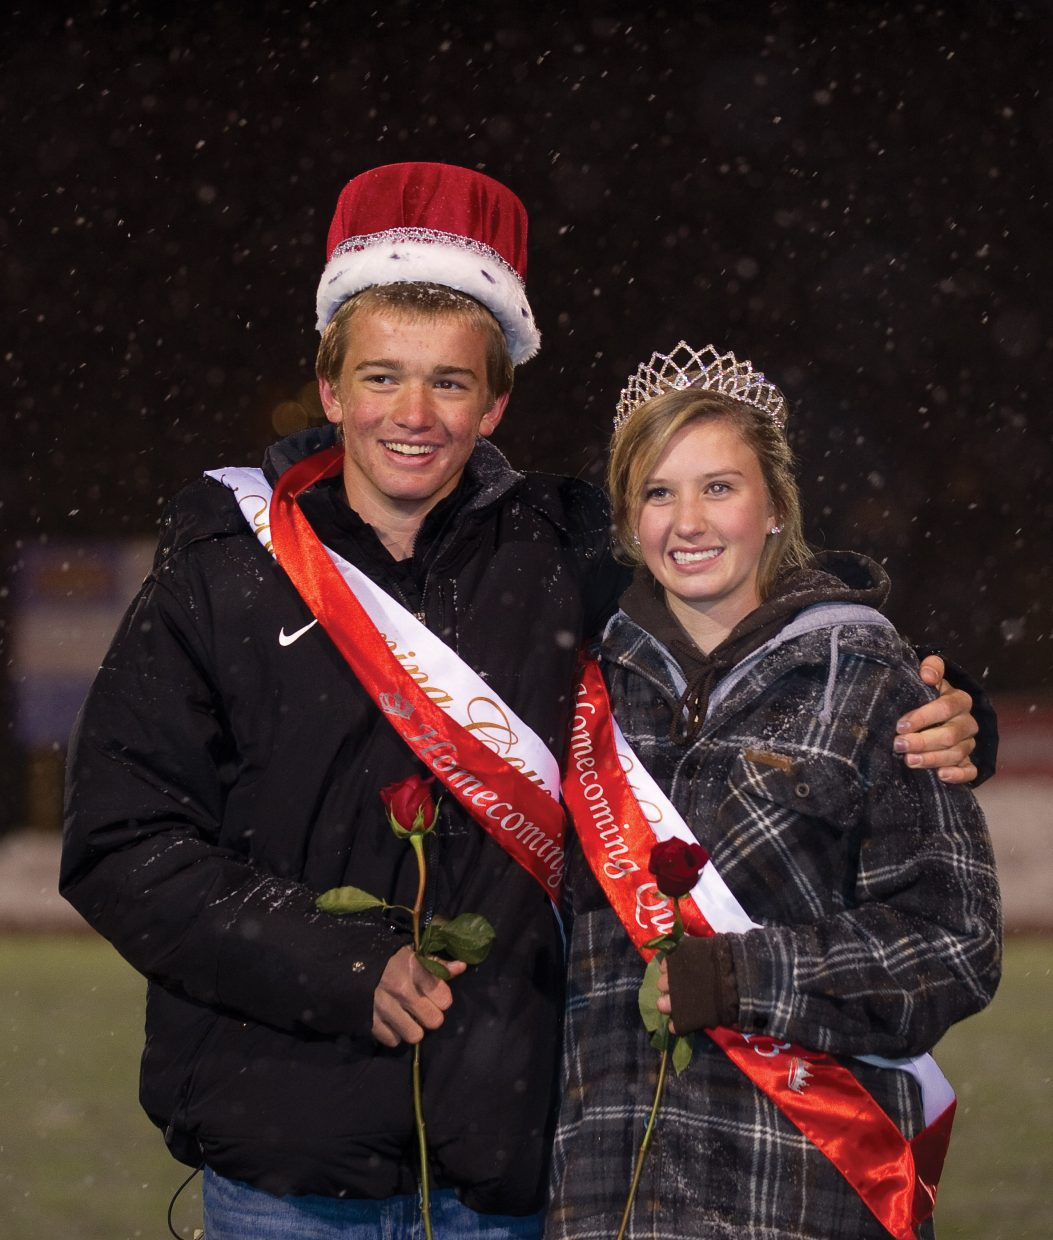 Jasper Good and Lena Barker were crowned homecoming king and queen during Friday night's game at Gardner Field.